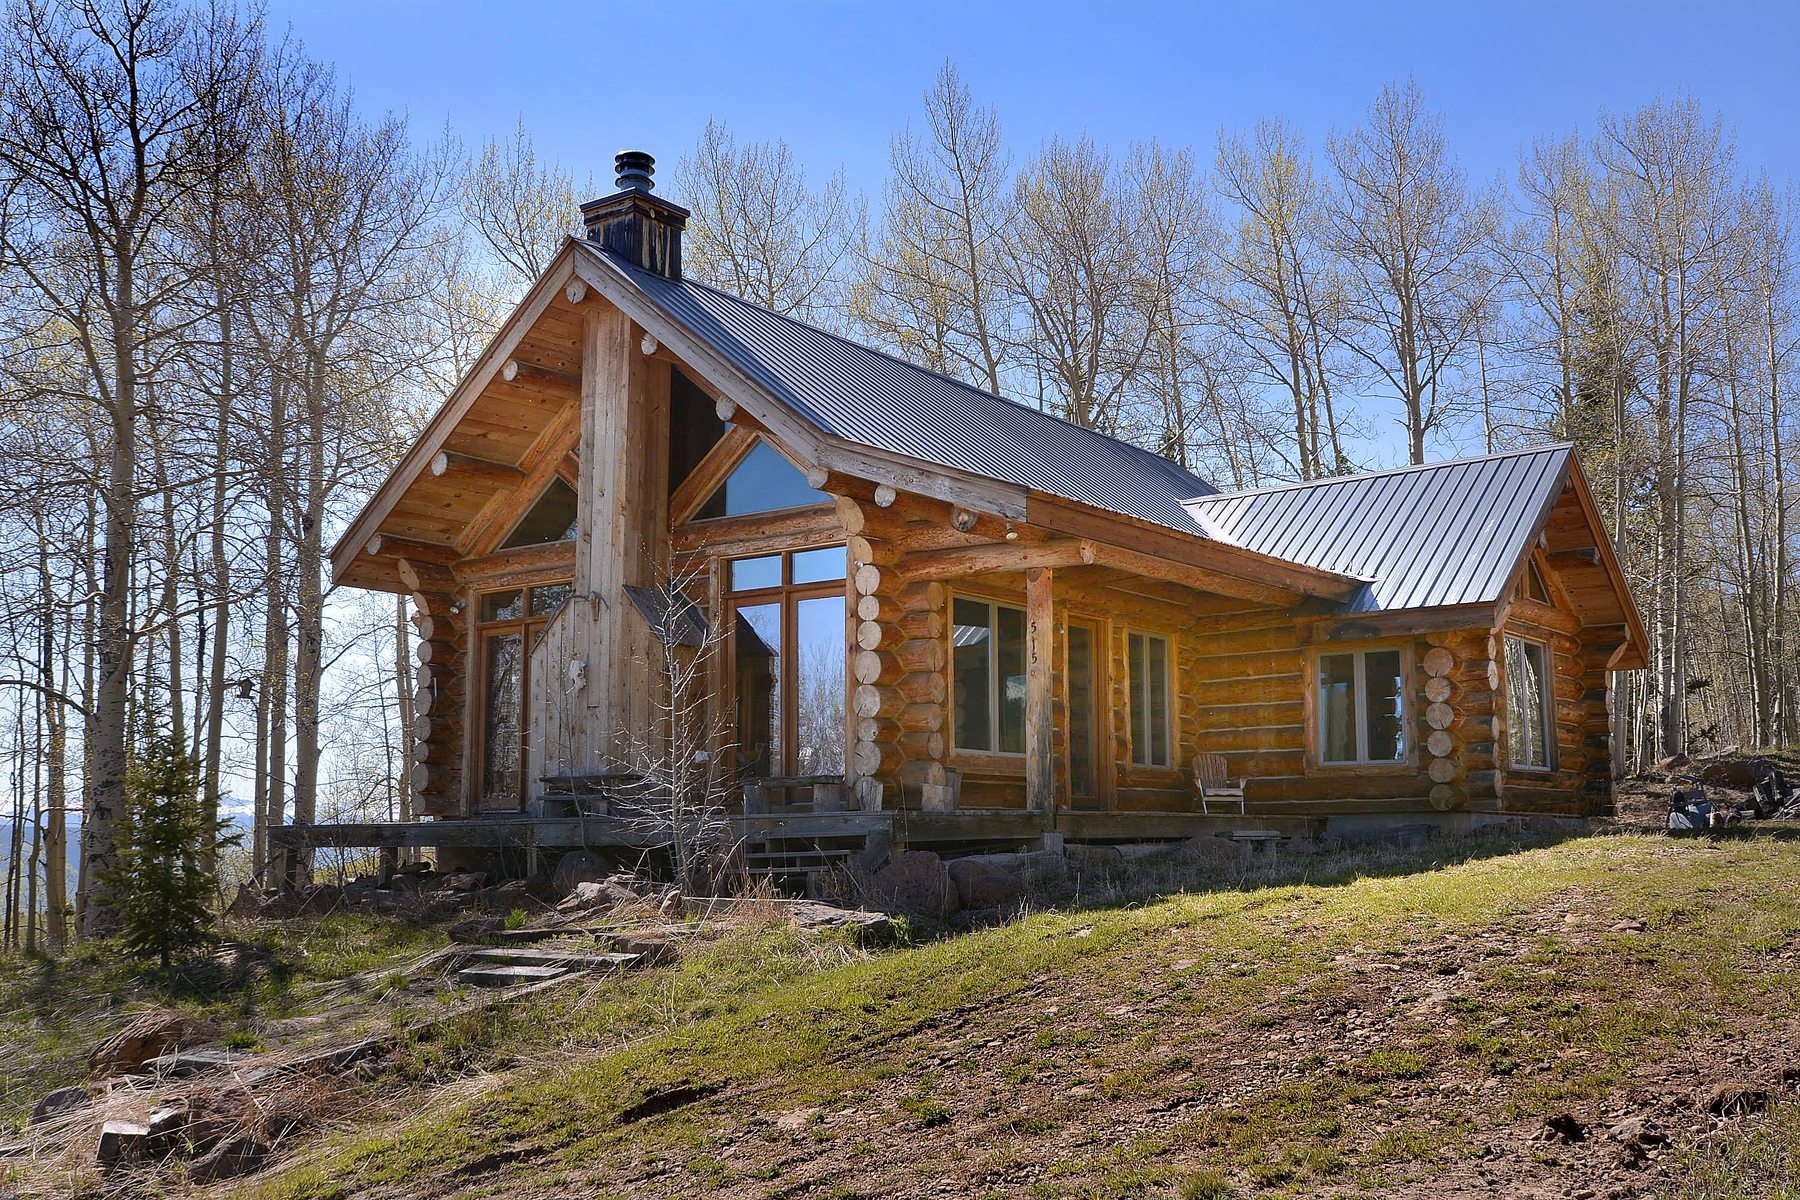 Single Family Home for Sale at Base of Red Mountain 515 Oversteeg Gulch Road Crested Butte, Colorado, 81224 United States